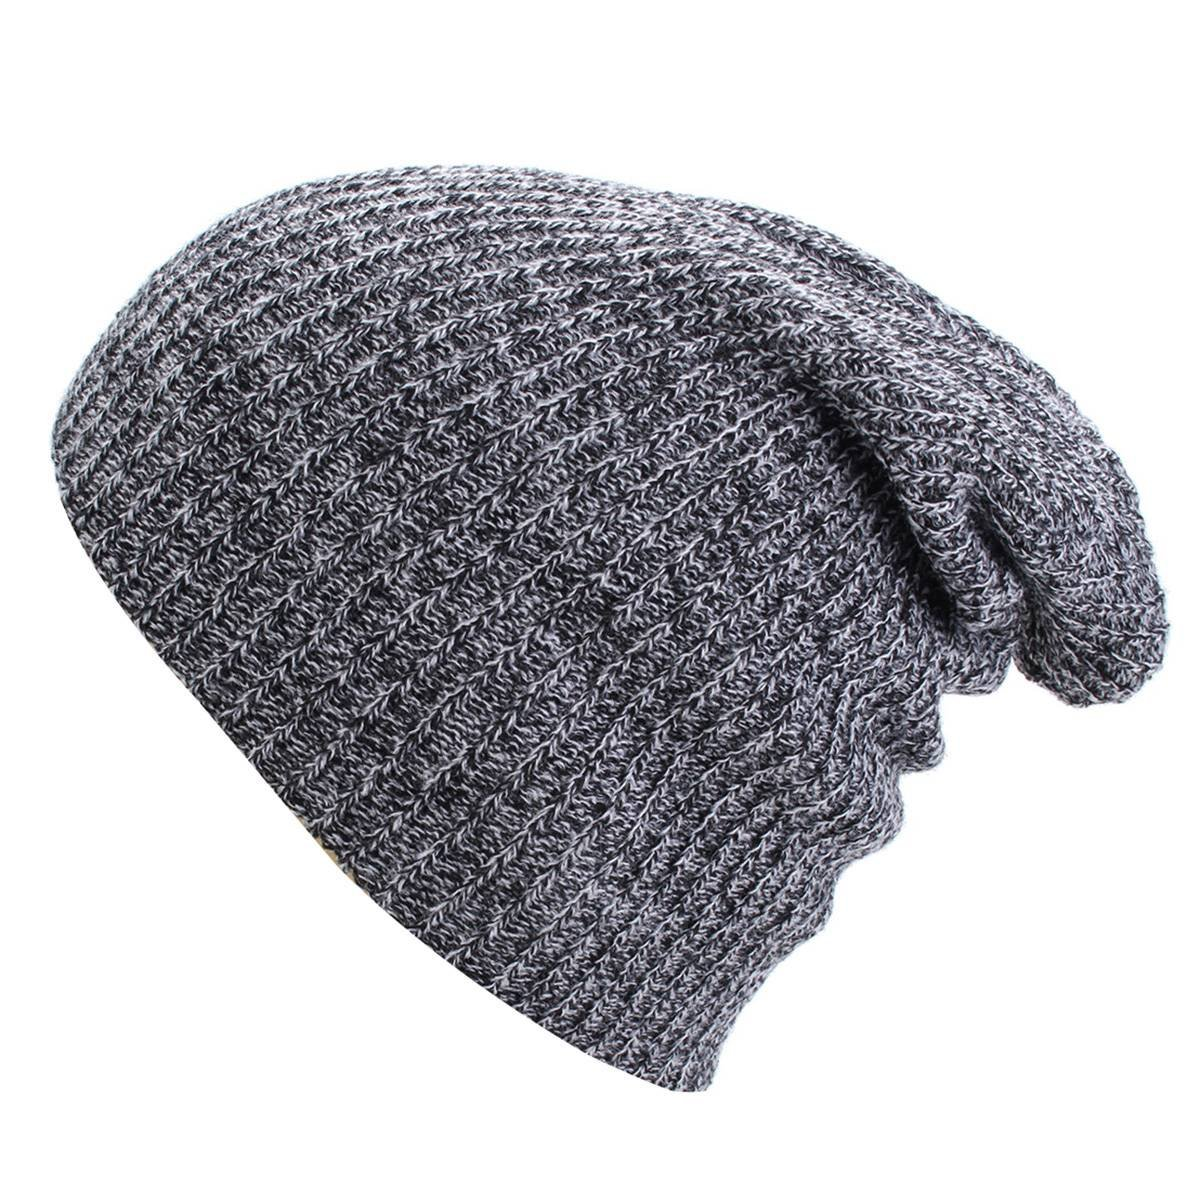 OUTERDO Fashion Men Women Winter Knit Oversize Baggy Beanie Hat Ski Slouchy Skull Cap deep gray